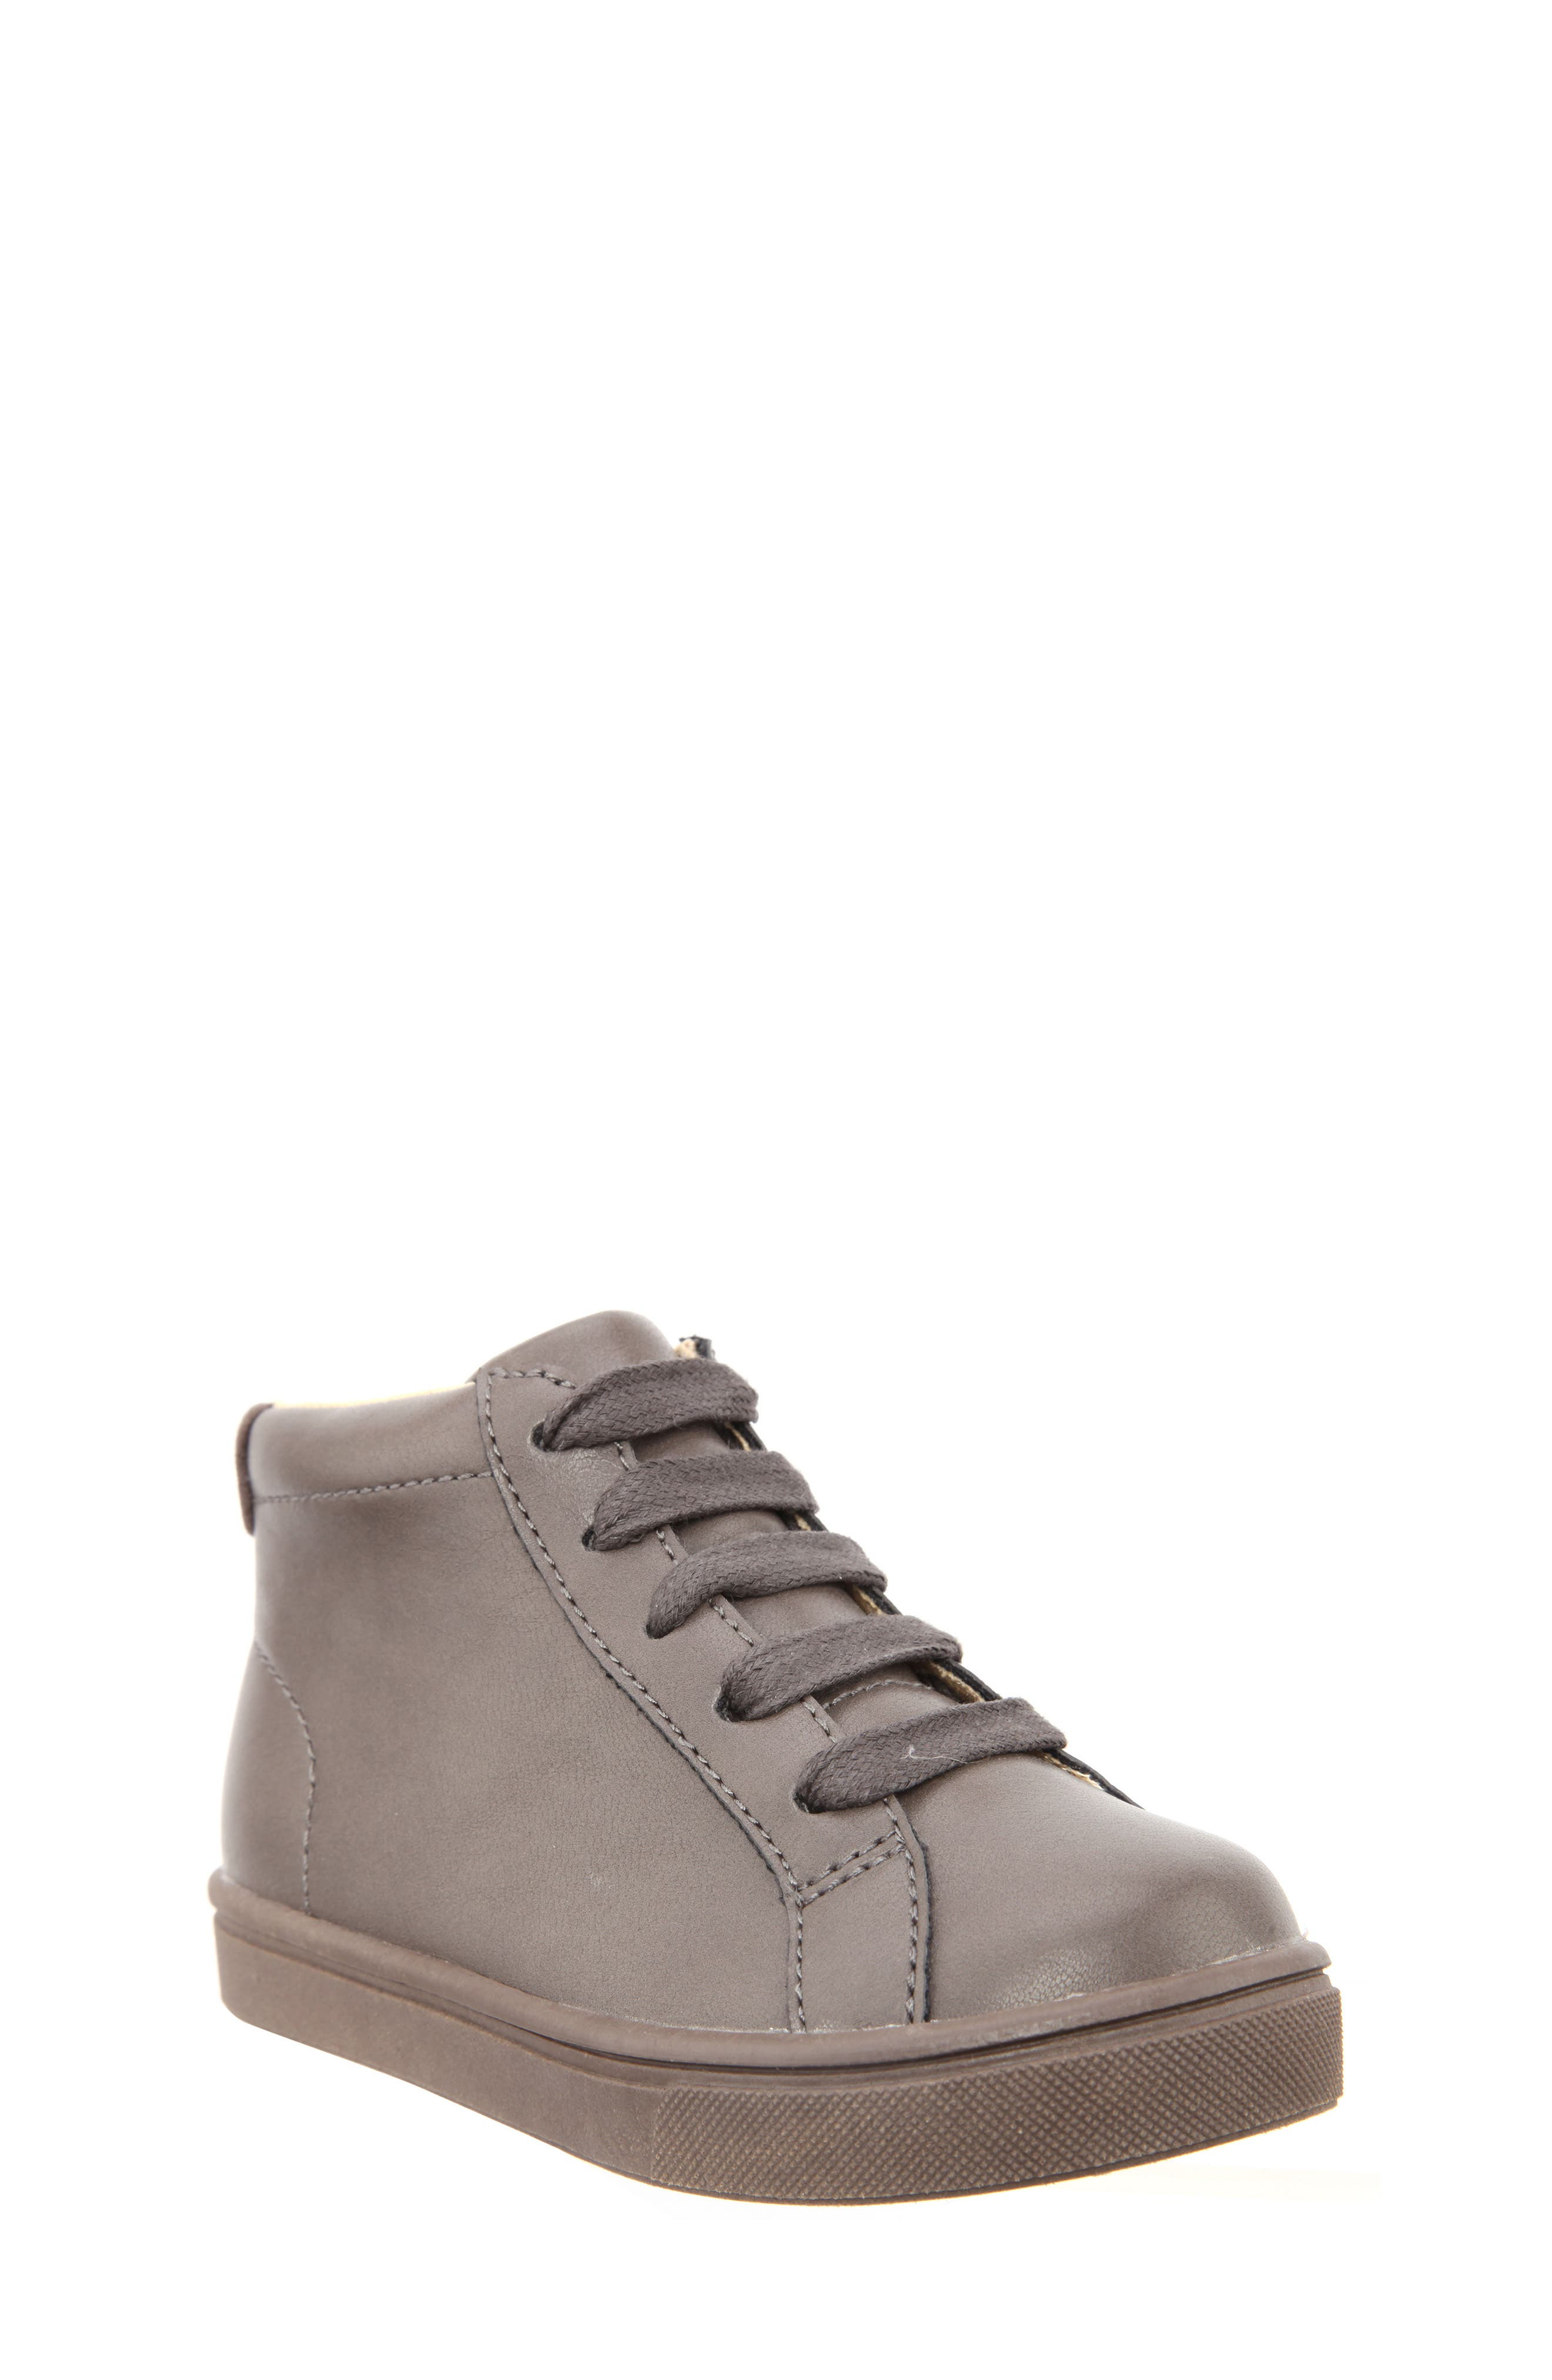 Ricky Mid Top Zip Sneaker,                             Main thumbnail 2, color,